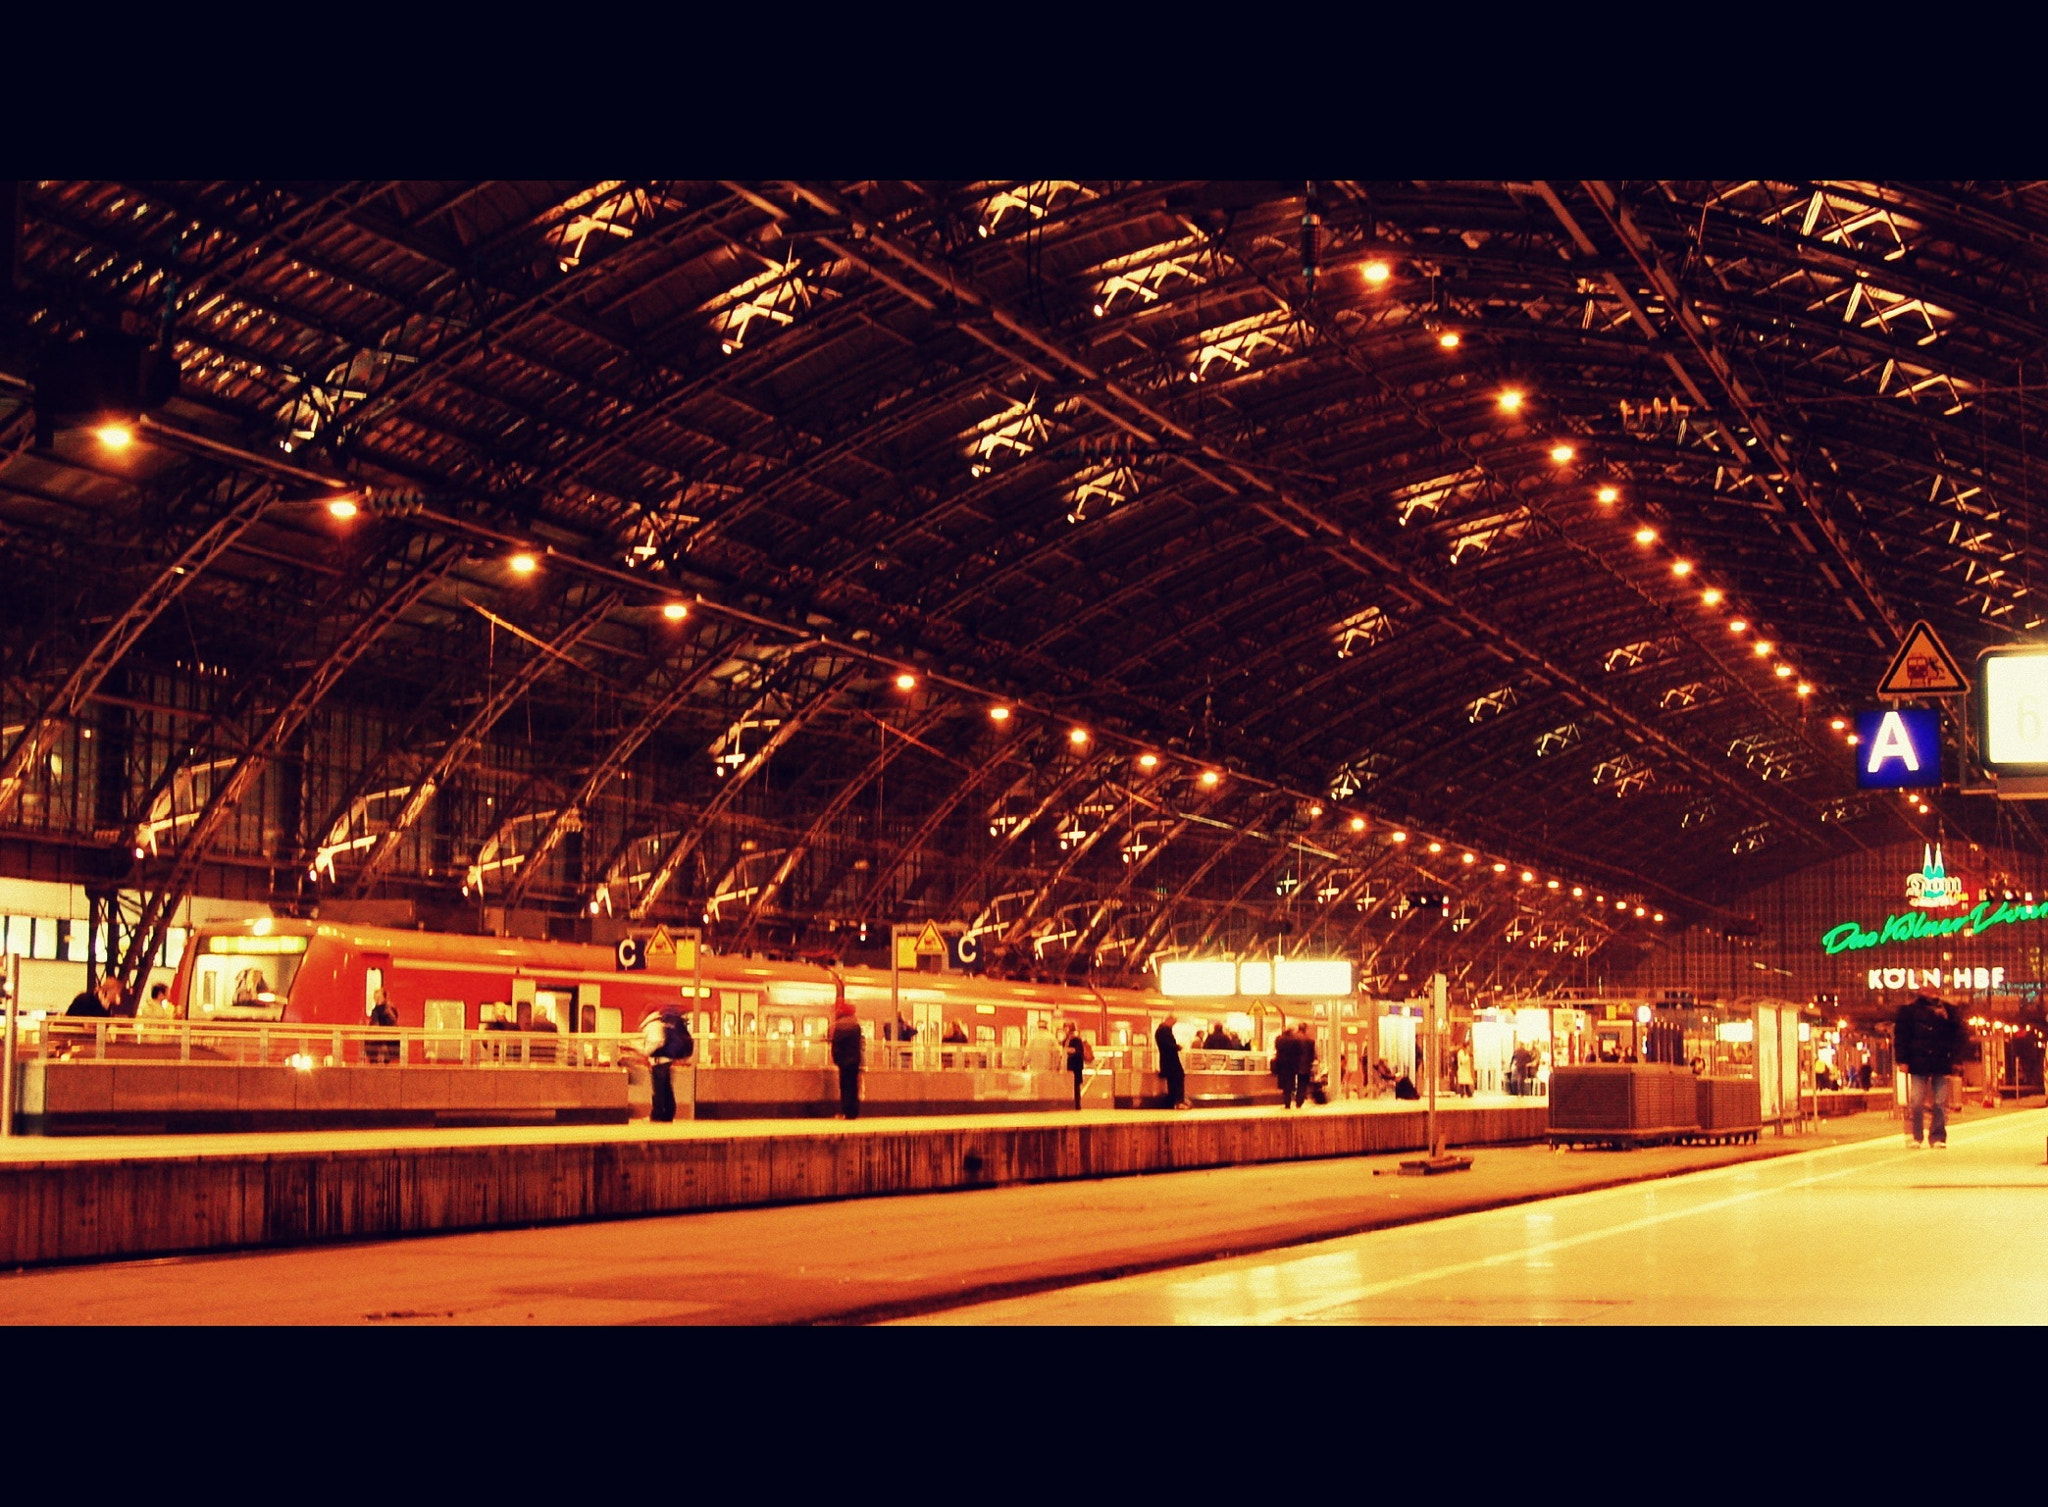 Photograph Cologne HauptBahnHoff by Theodosis Christopoulos on 500px